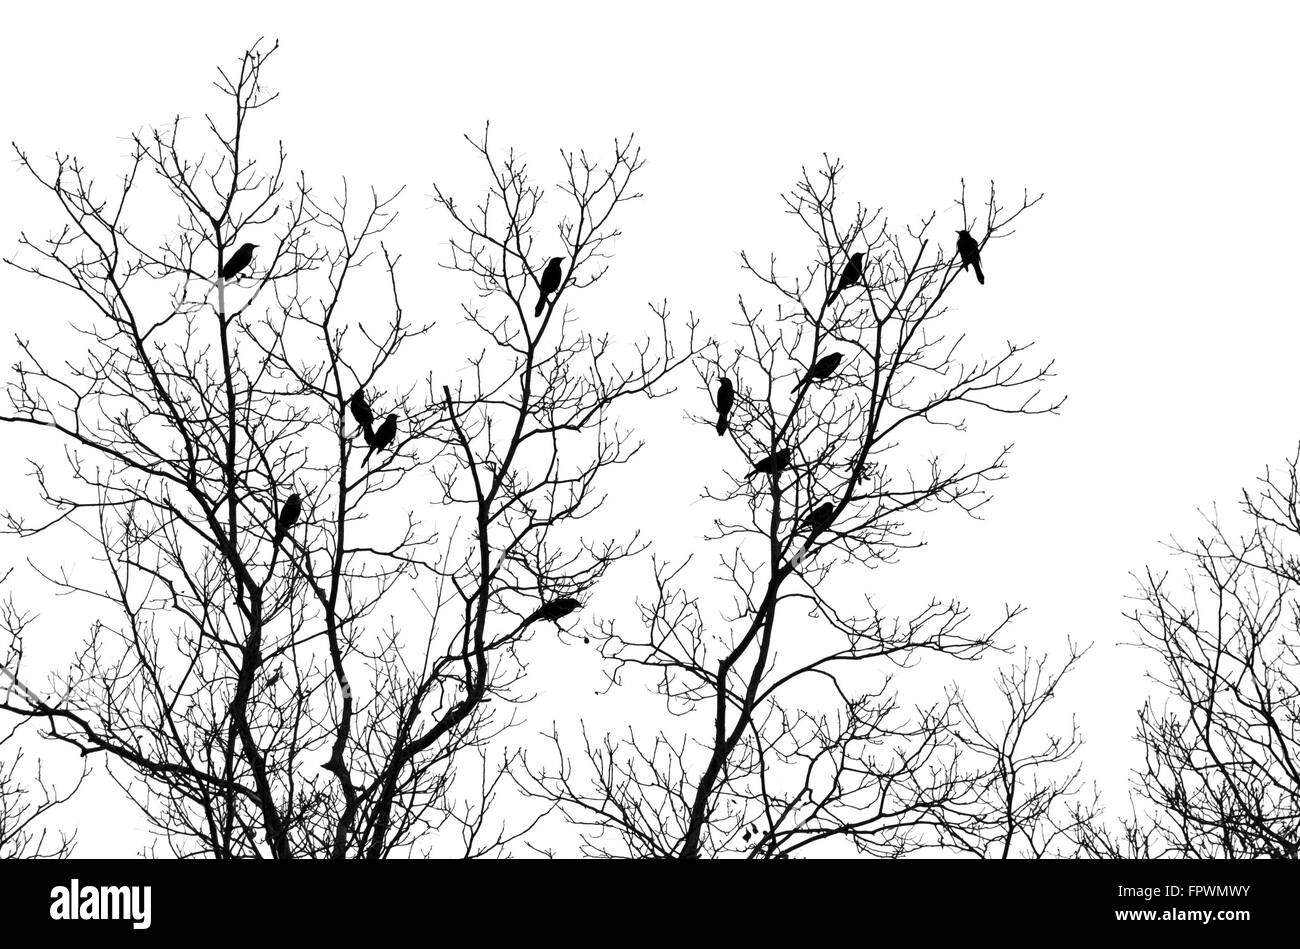 Birds in tree isolated on white background - Stock Image